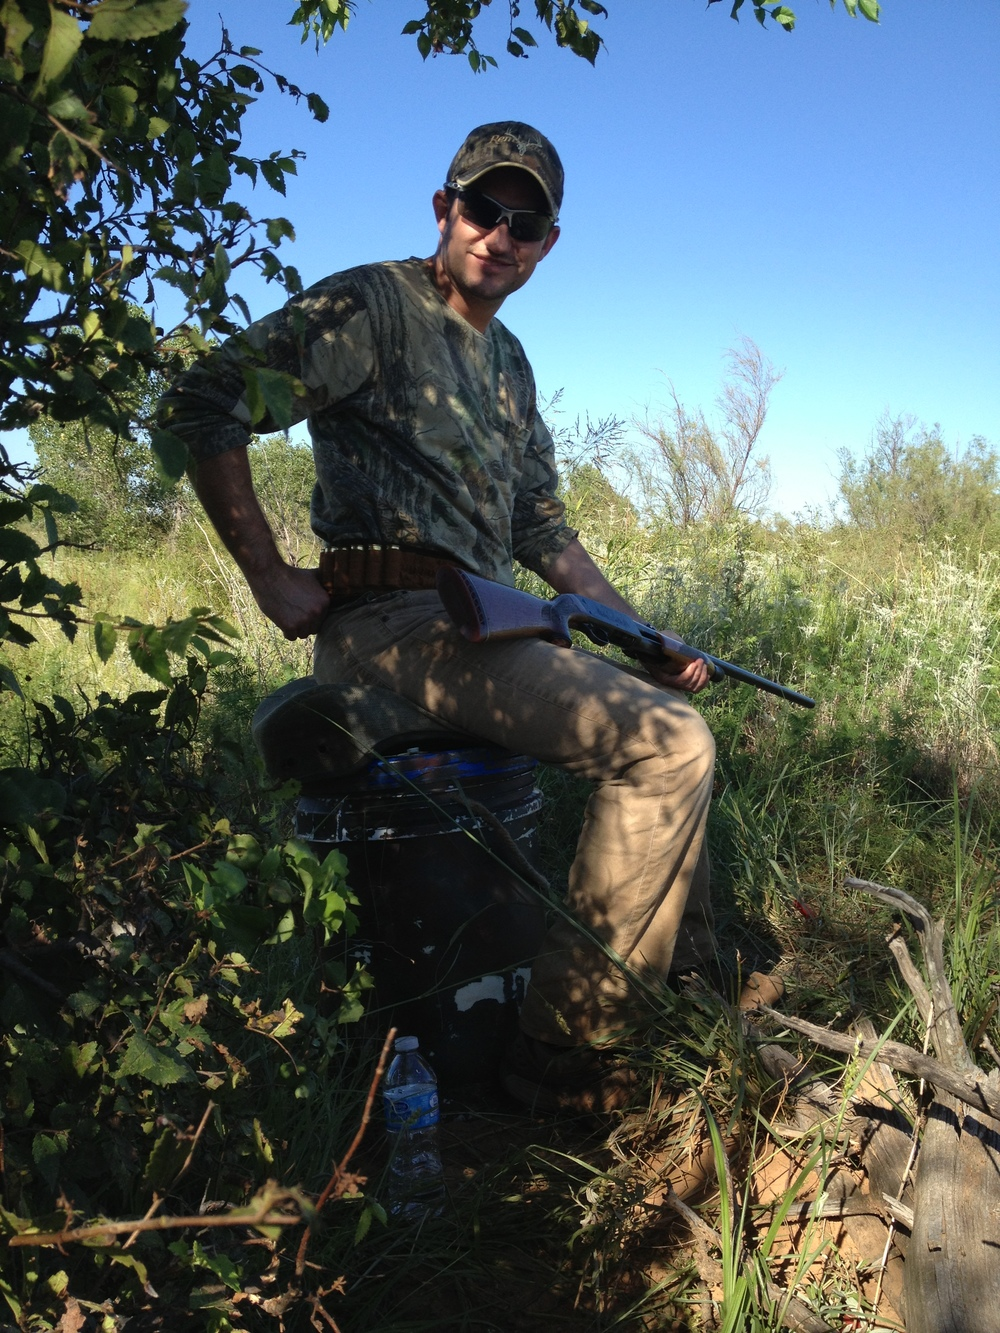 We are looking forward to Dove season! Call for availability.